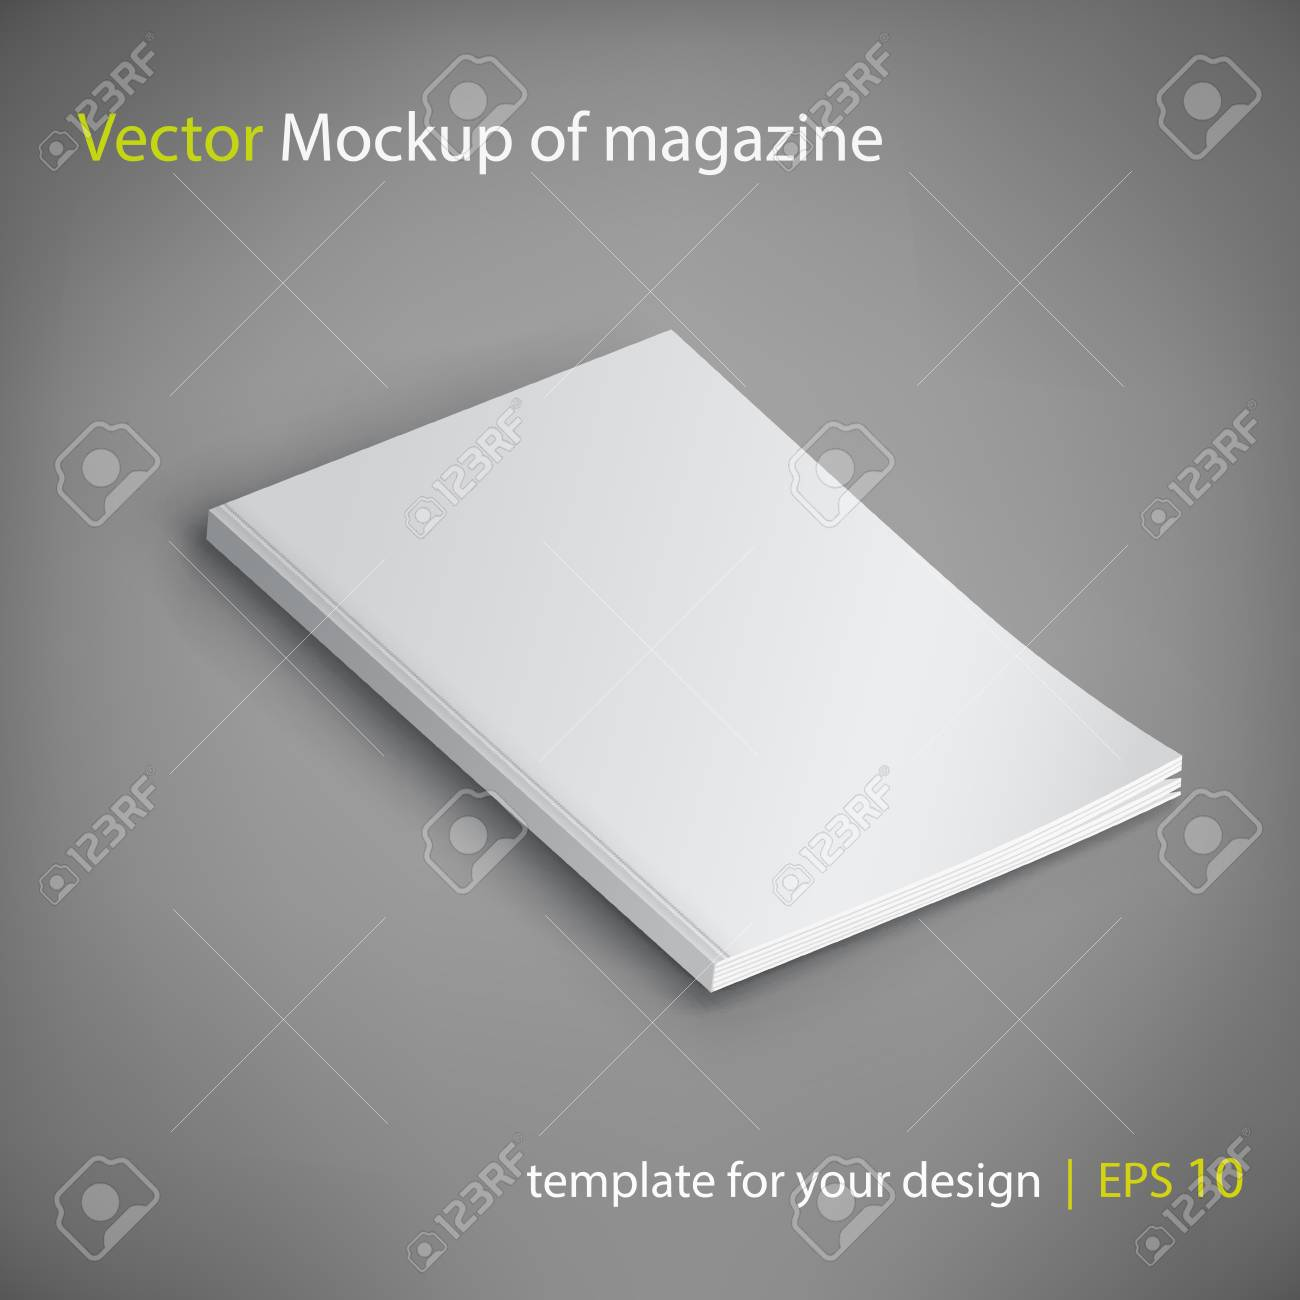 Vector Mockup of magazine on gray background. Template for your design. - 79421969